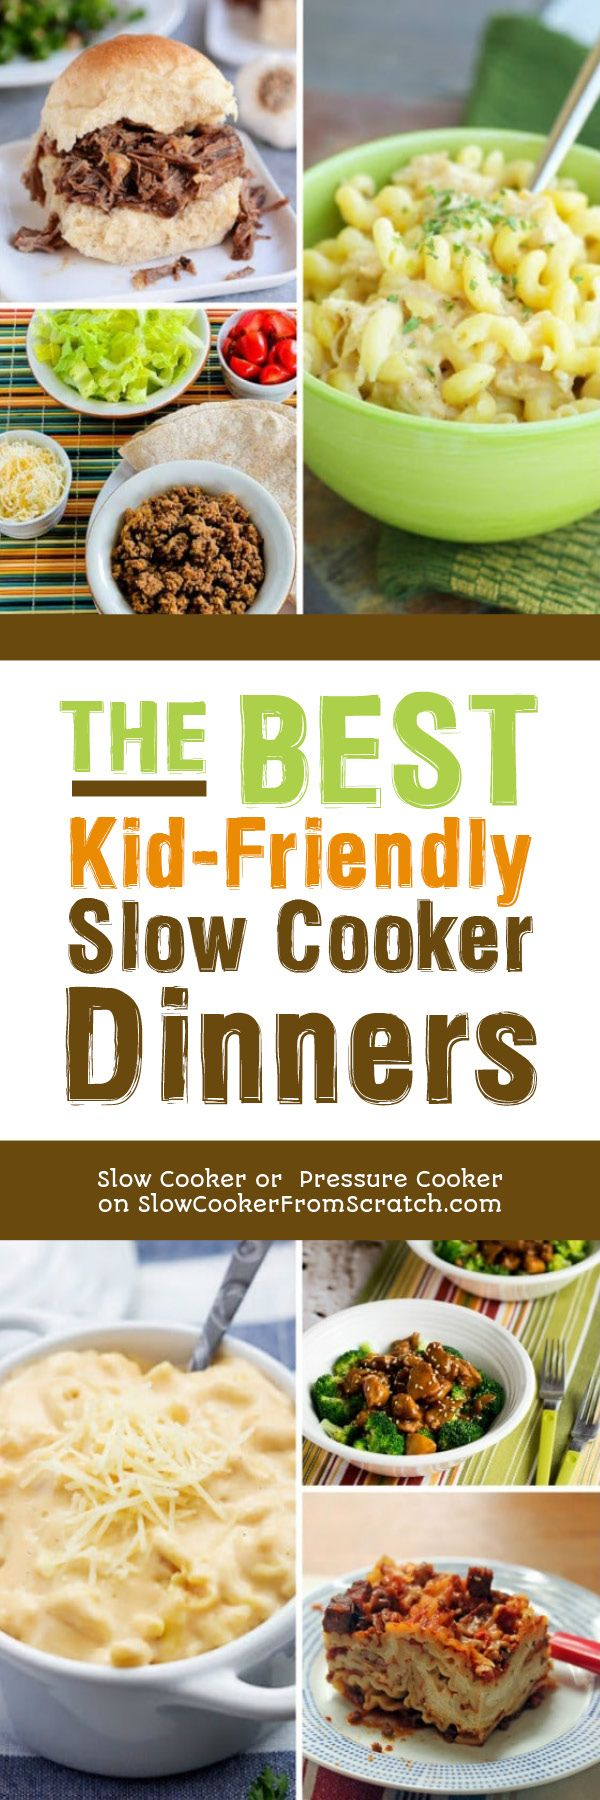 The BEST Kid-Friendly Slow Cooker Dinners are recipes you'll make over and over when you need an easy slow cooker meal. And these are things the kids will eat! [found on Slow Cooker or Pressure Cooker at SlowCookerFromScratch.com] #SlowCookerDinner #KidFriendlySlowCookerDinner #KidFriendlyDinner